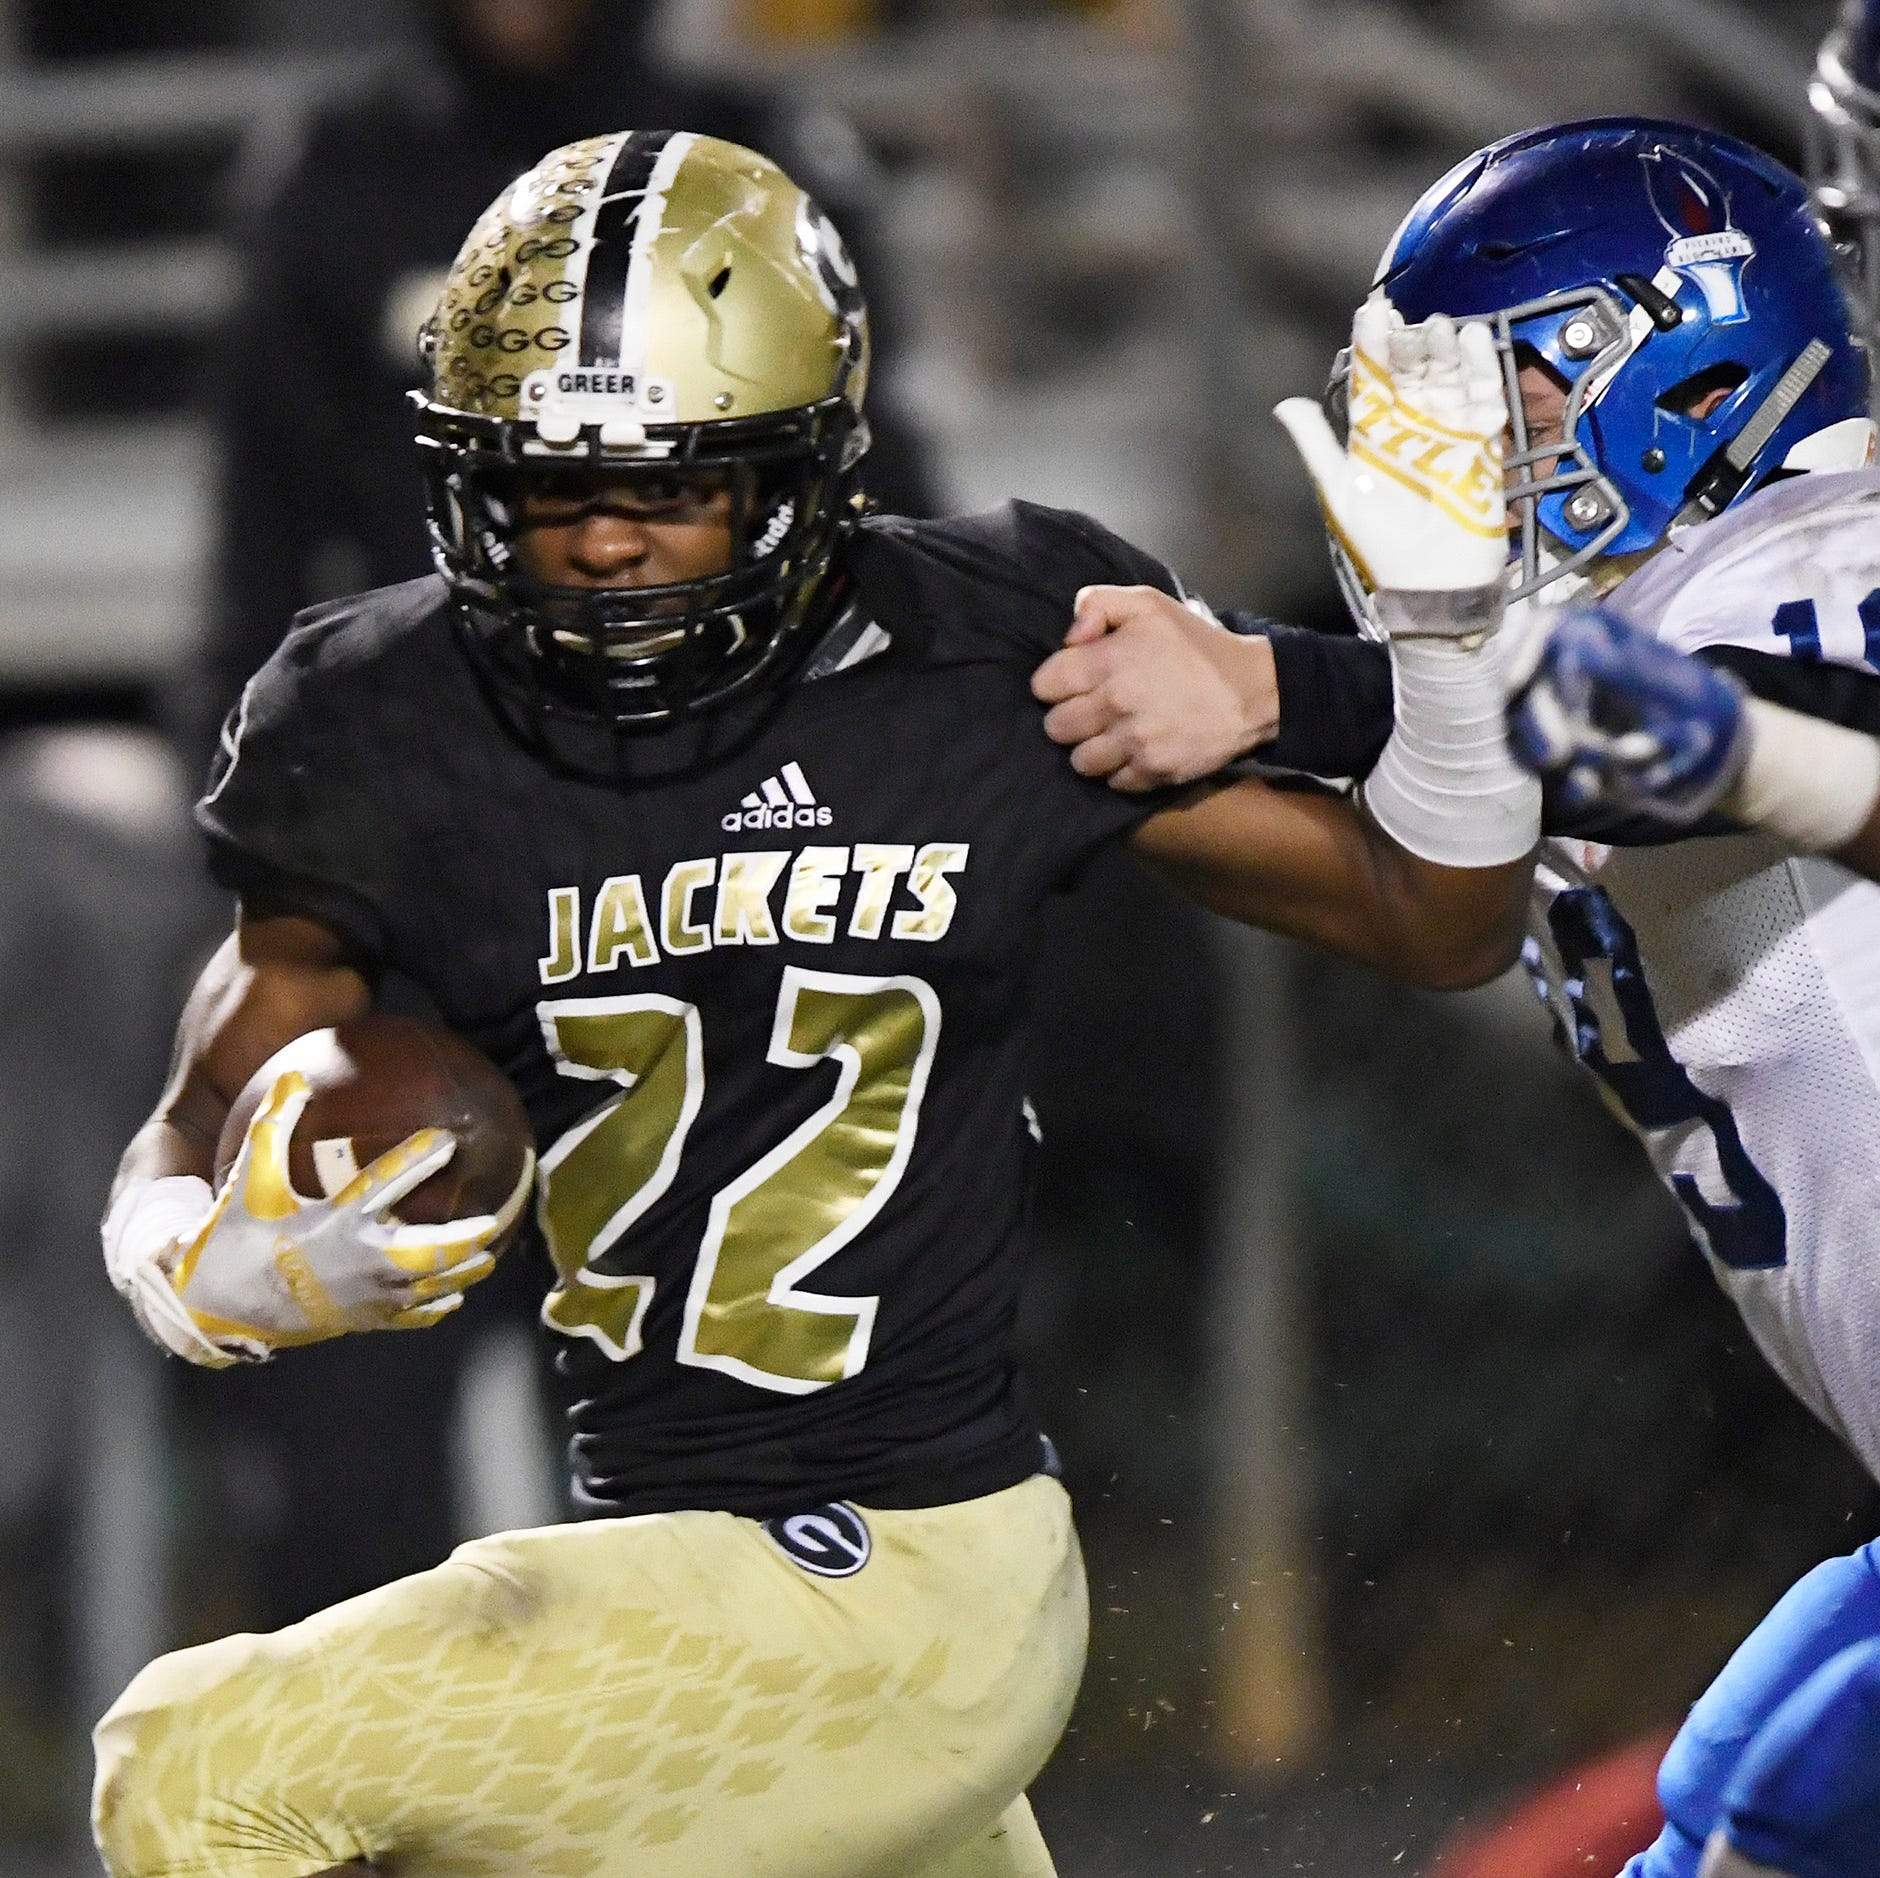 GreerÕs Dre Williams (22) pulls away from Pickens' Collin Hinkle (19) in the first round of the class AAAA playoffs Friday, November 9, 2018 at Greer's Dooley Field.